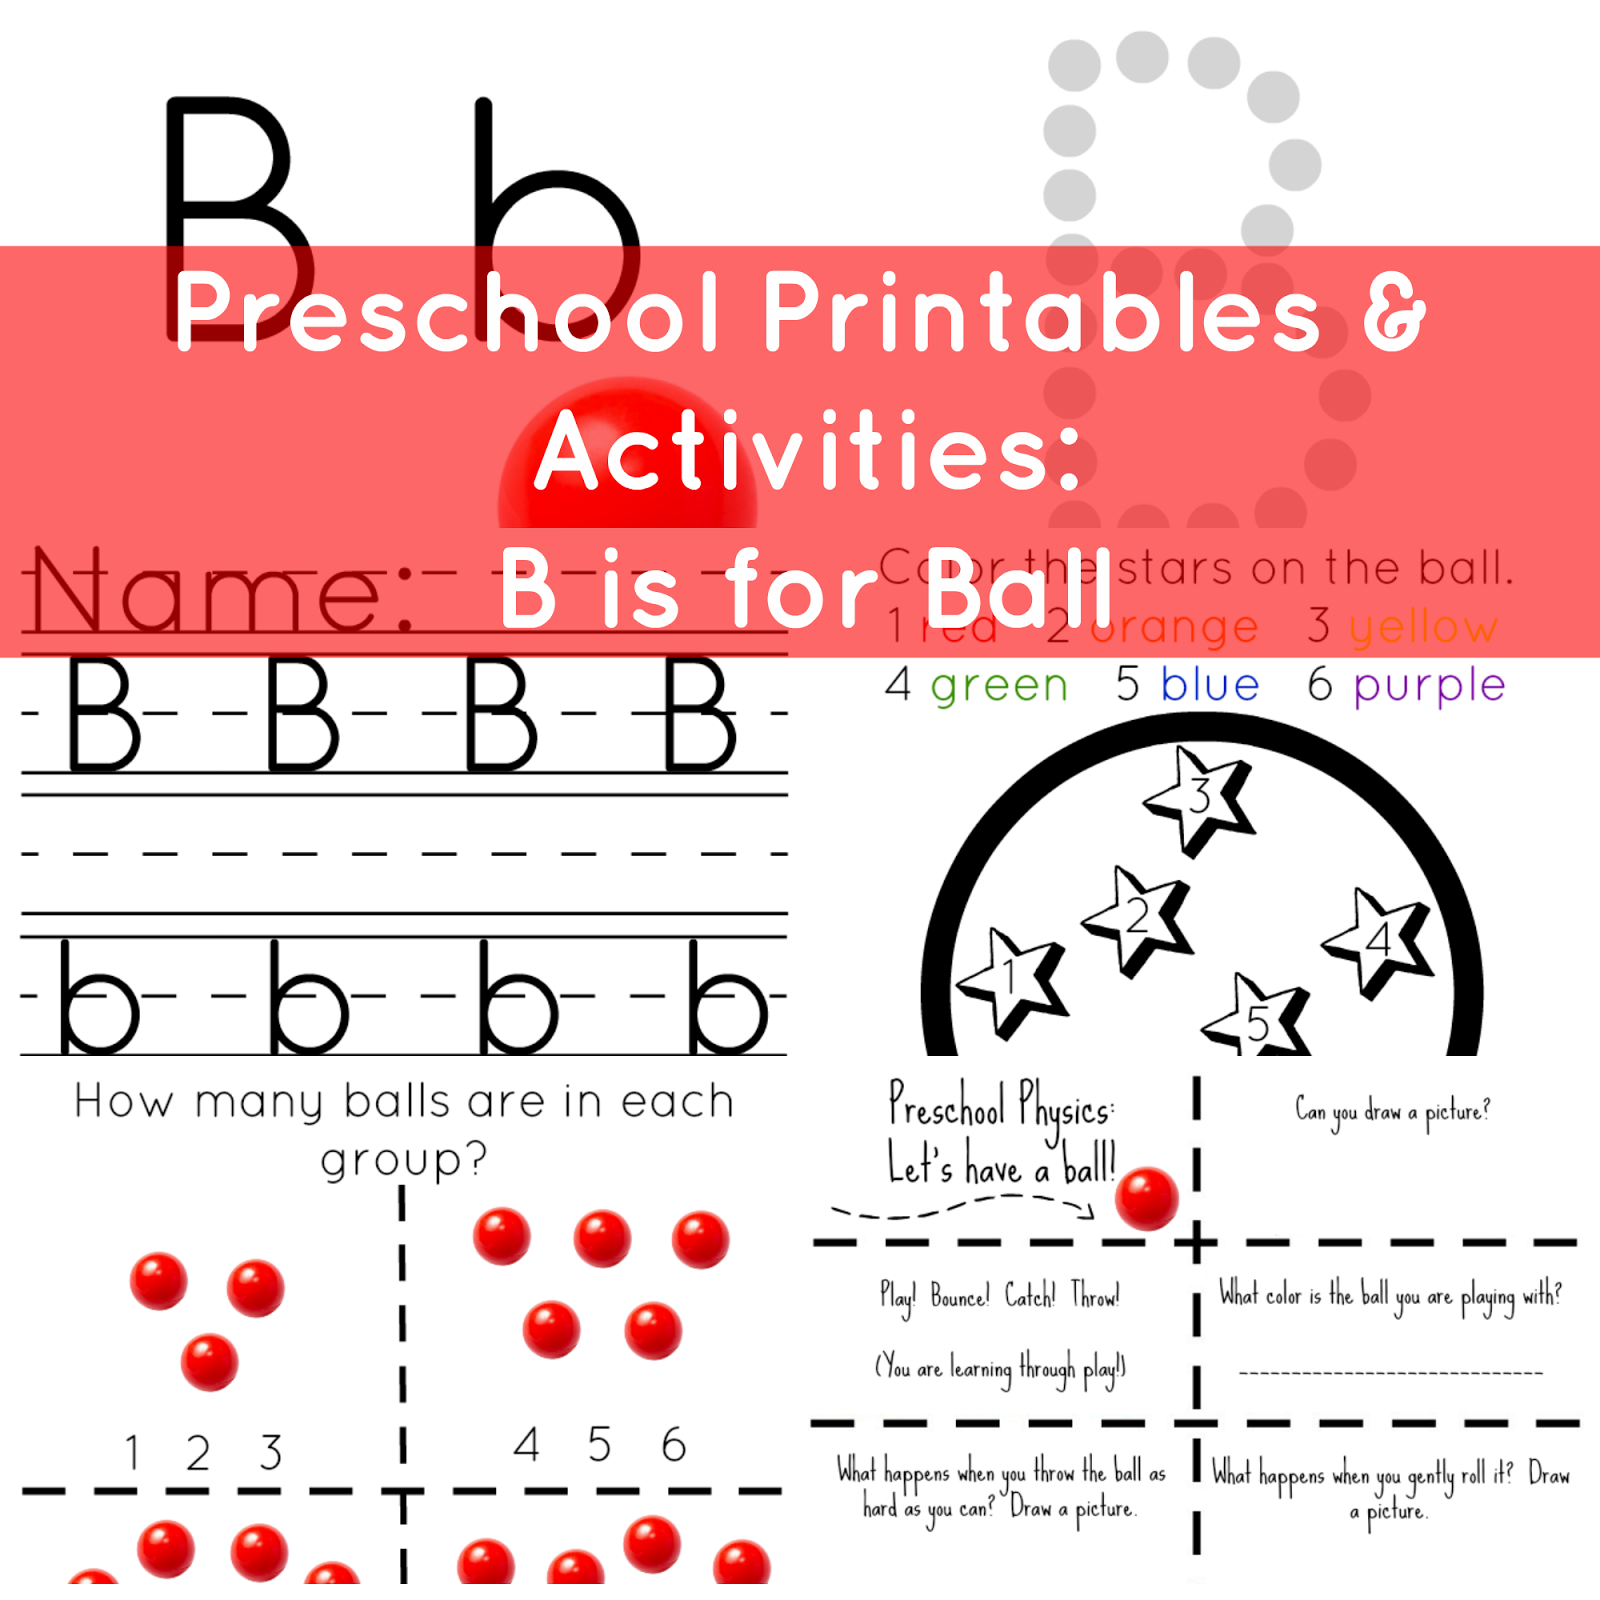 The Life Of Jennifer Dawn Preschool Printables Amp Activities B Is For Ball